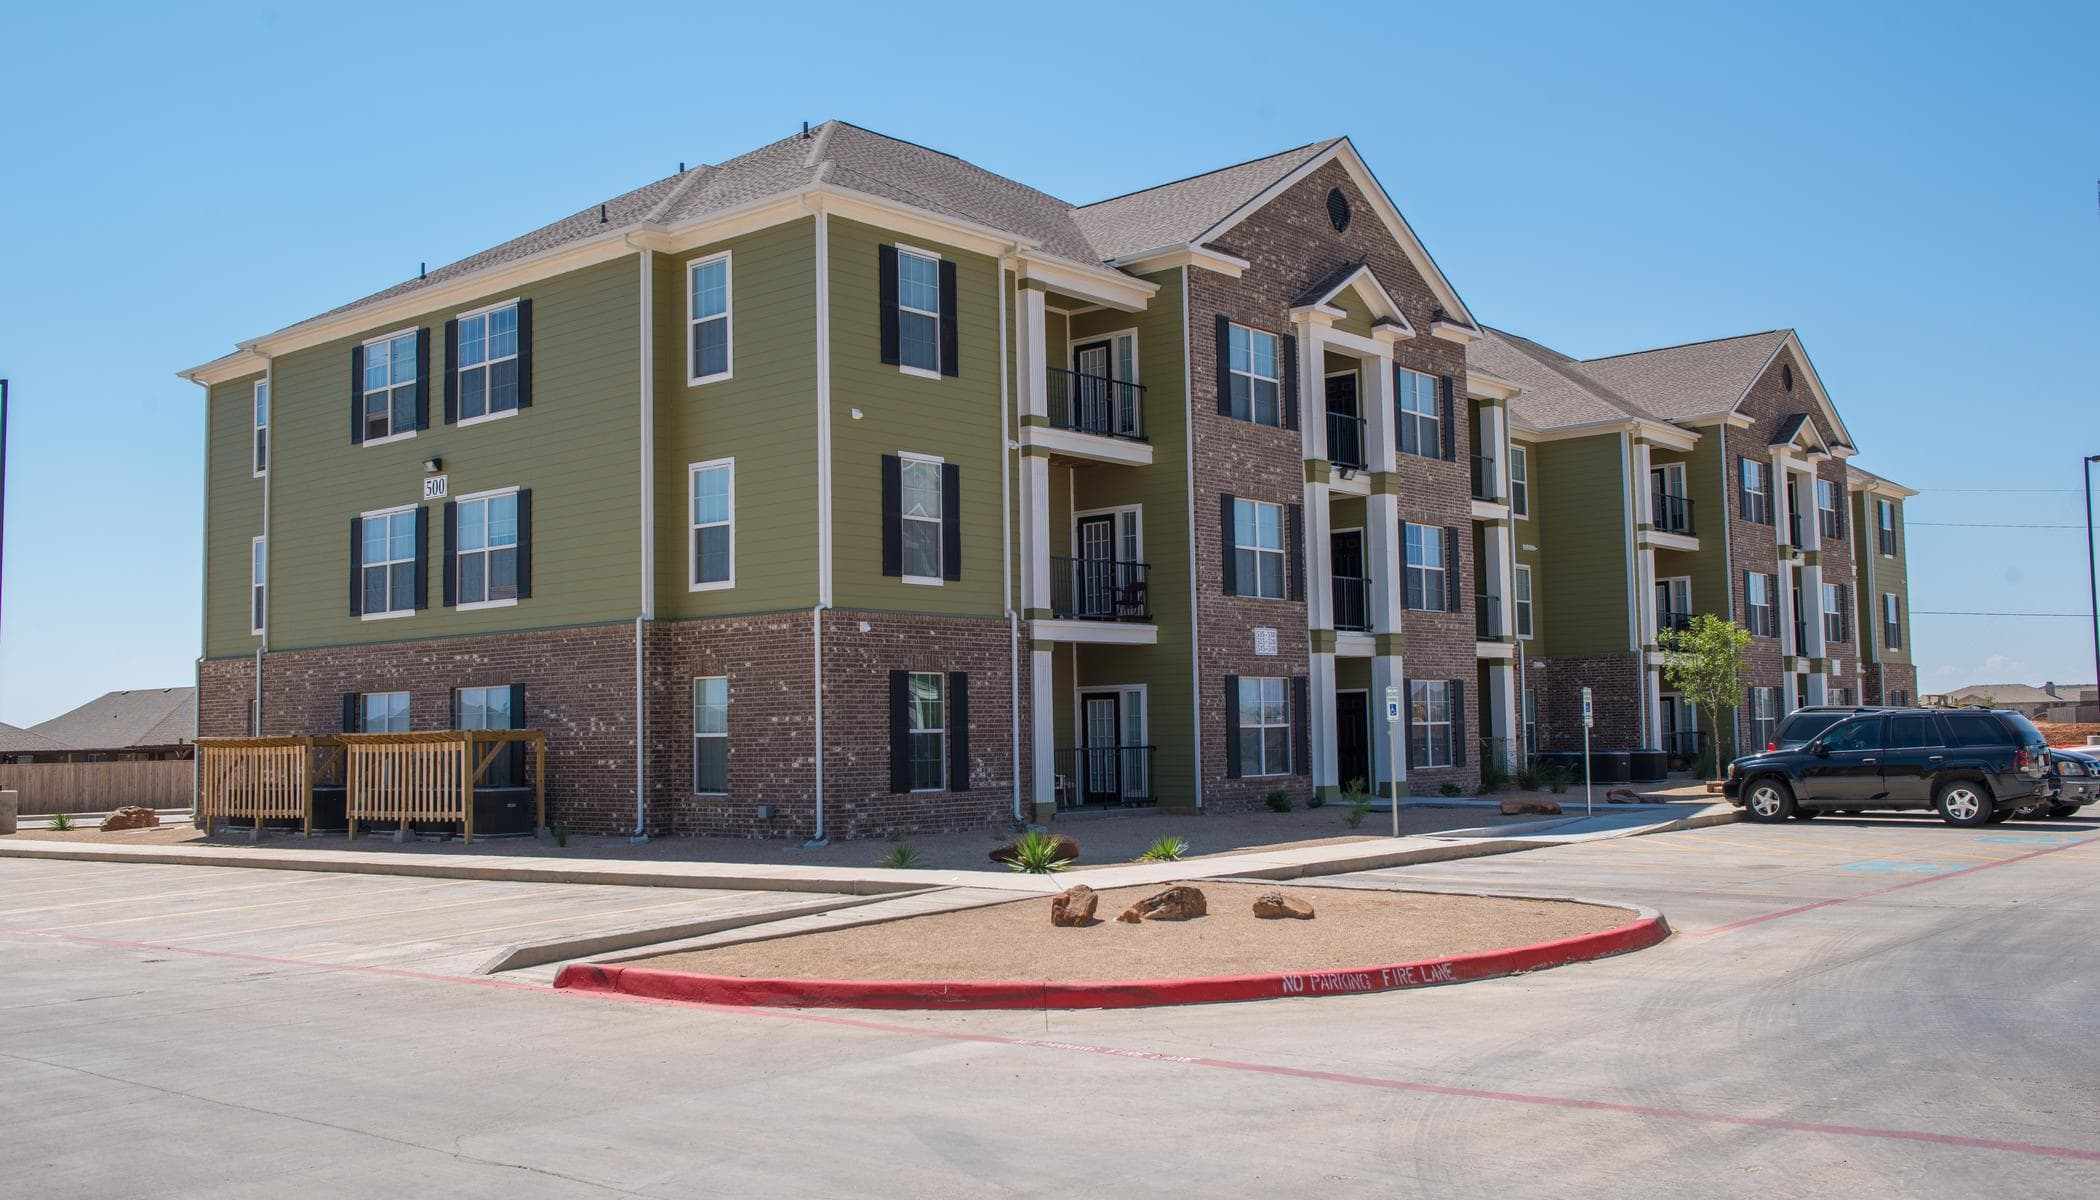 Apartments with spacious parking area at The Reserves at South Plains in Lubbock, TX